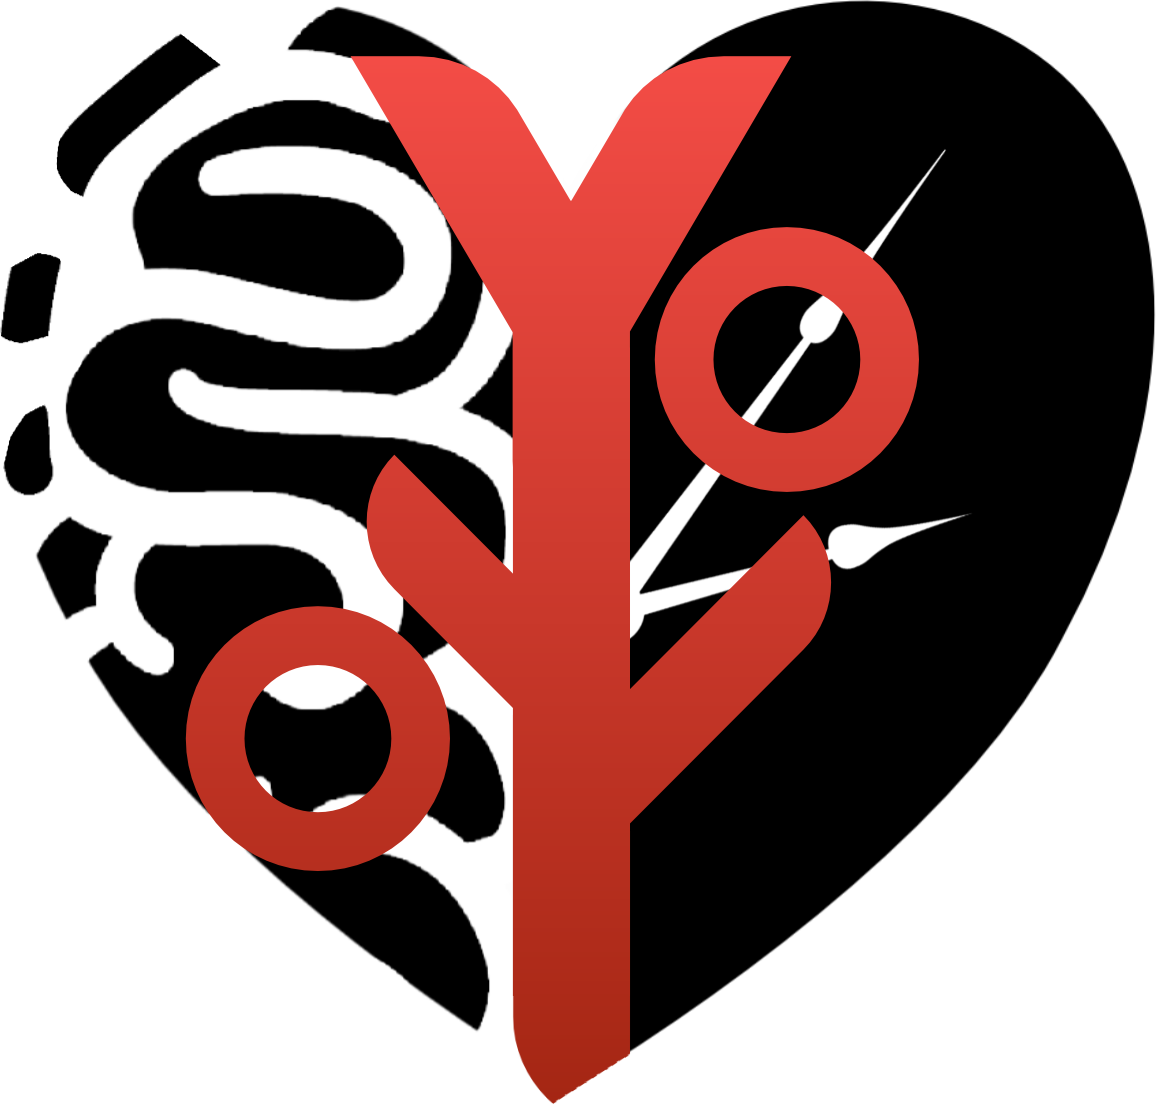 You Only Live Once - YOLO logo